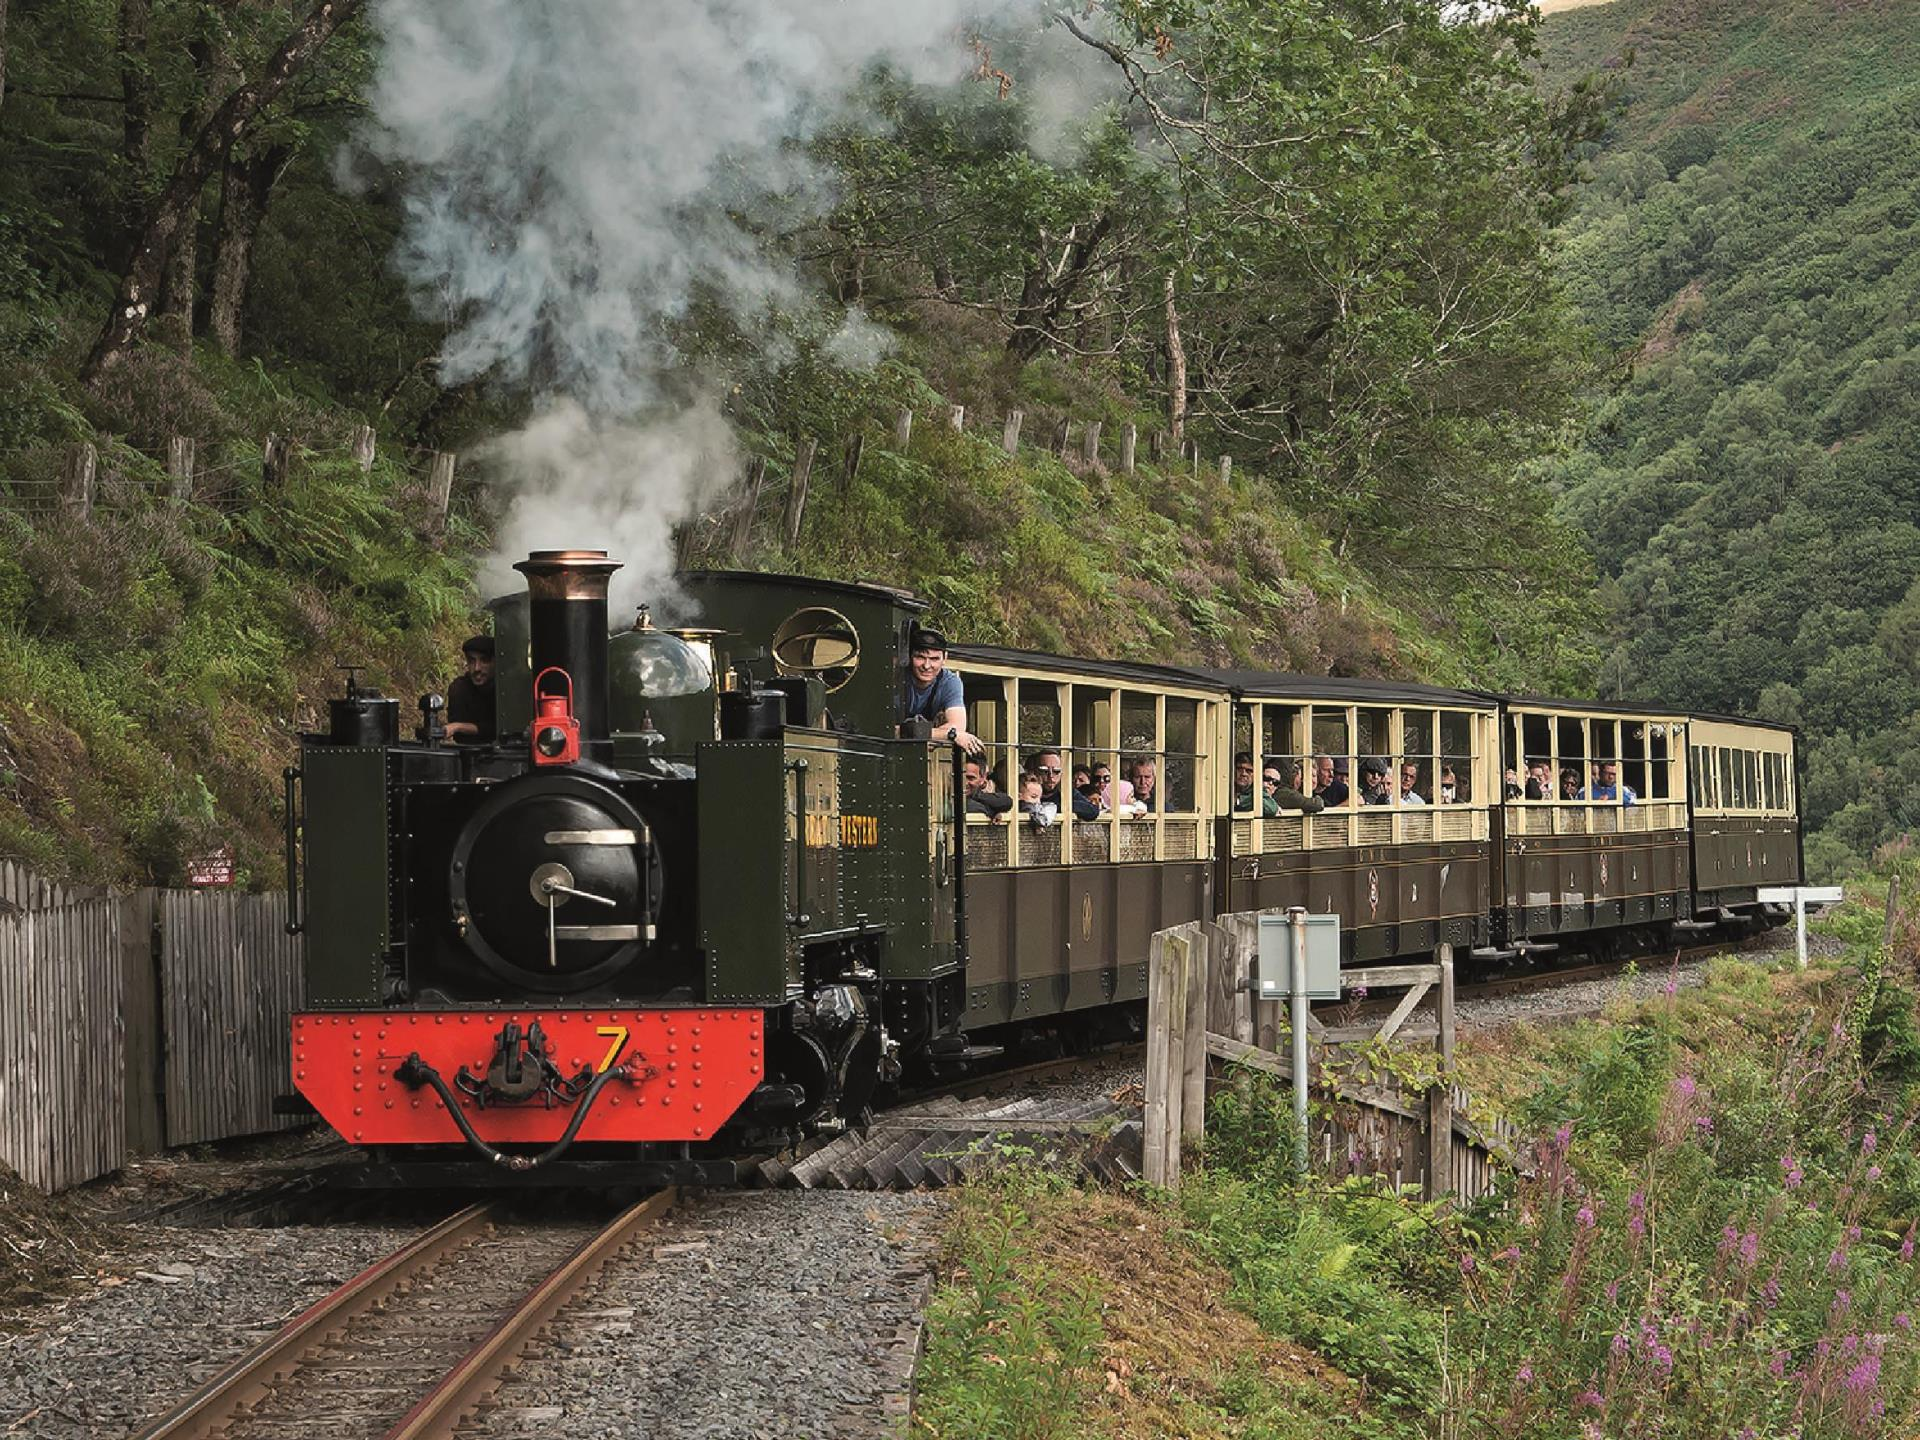 Vale of Rheidol Railway clings to the mountainside